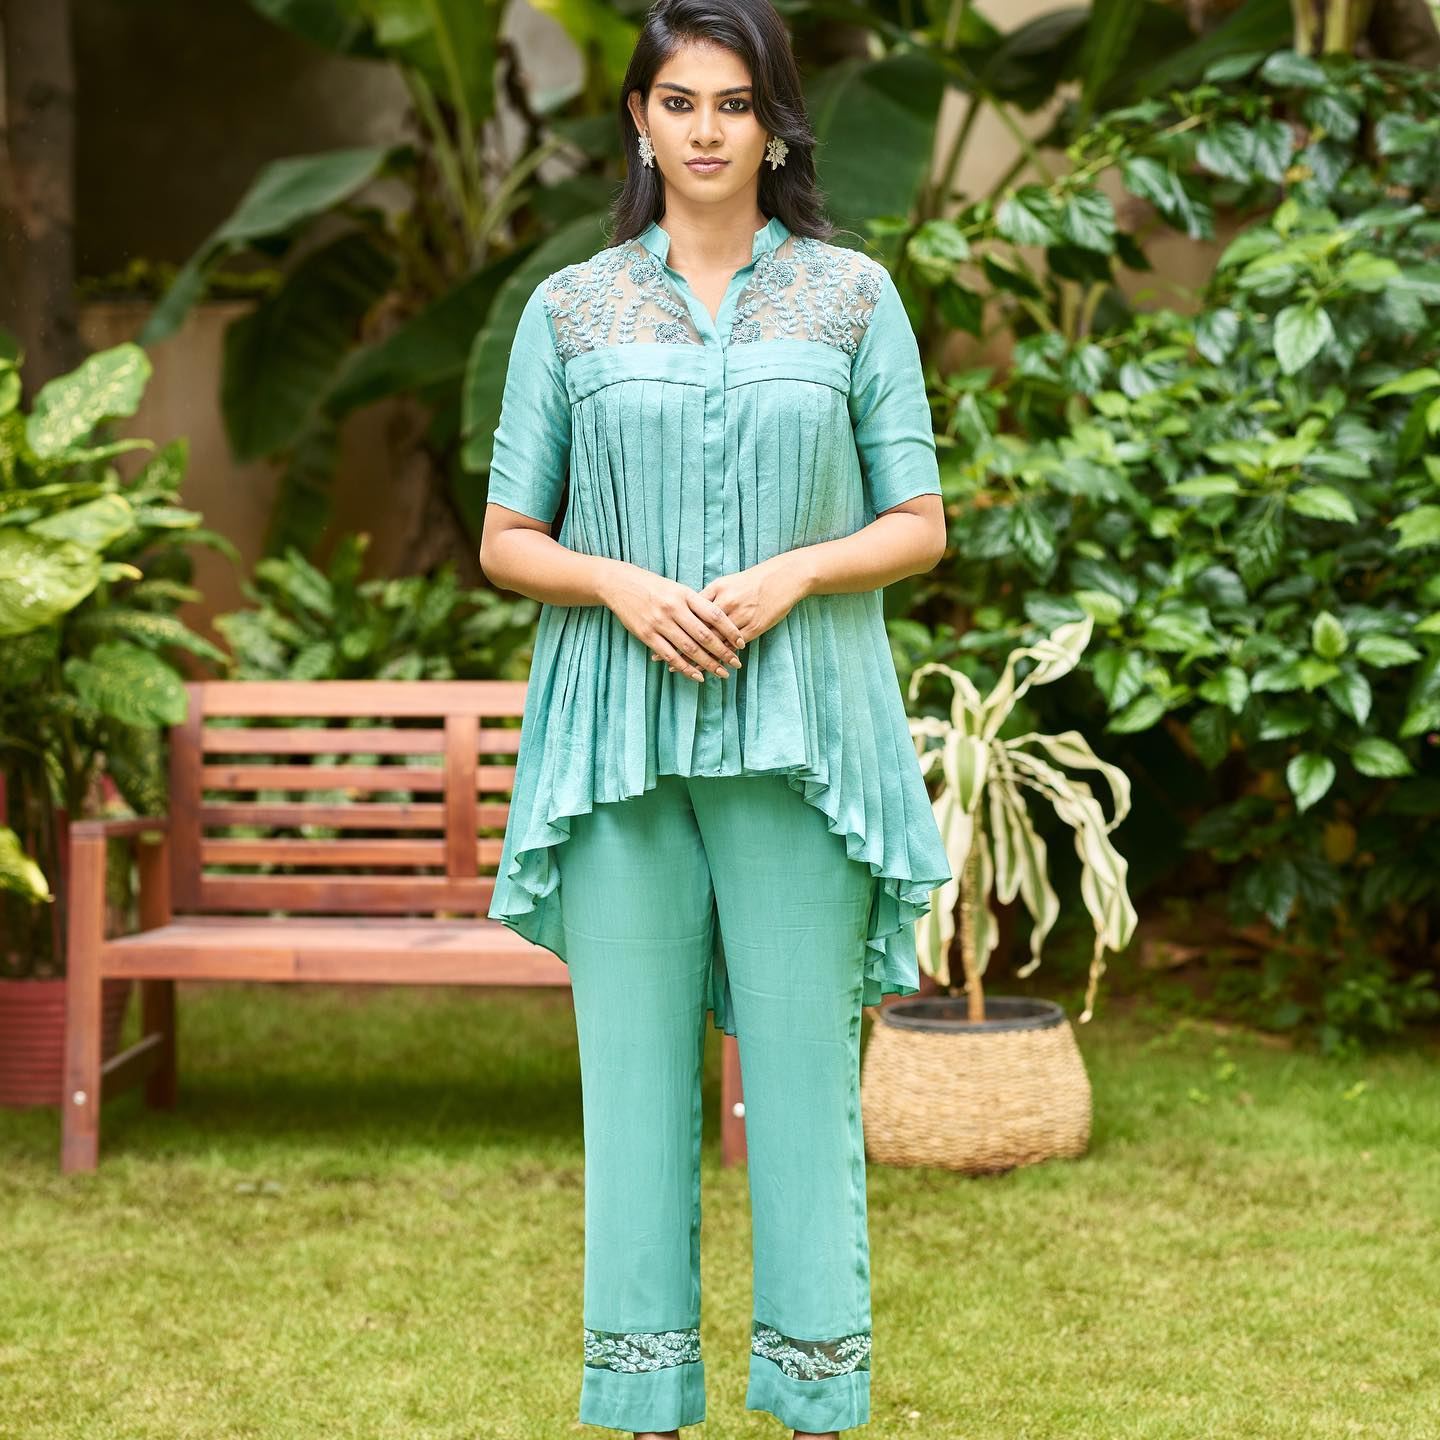 Divya in Skyline blue indowestern set with thread and zardozi embroidery detailing. This new chic silhouette is perfect to wear for mehendis cocktail parties and other wedding festivities.  2021-10-07